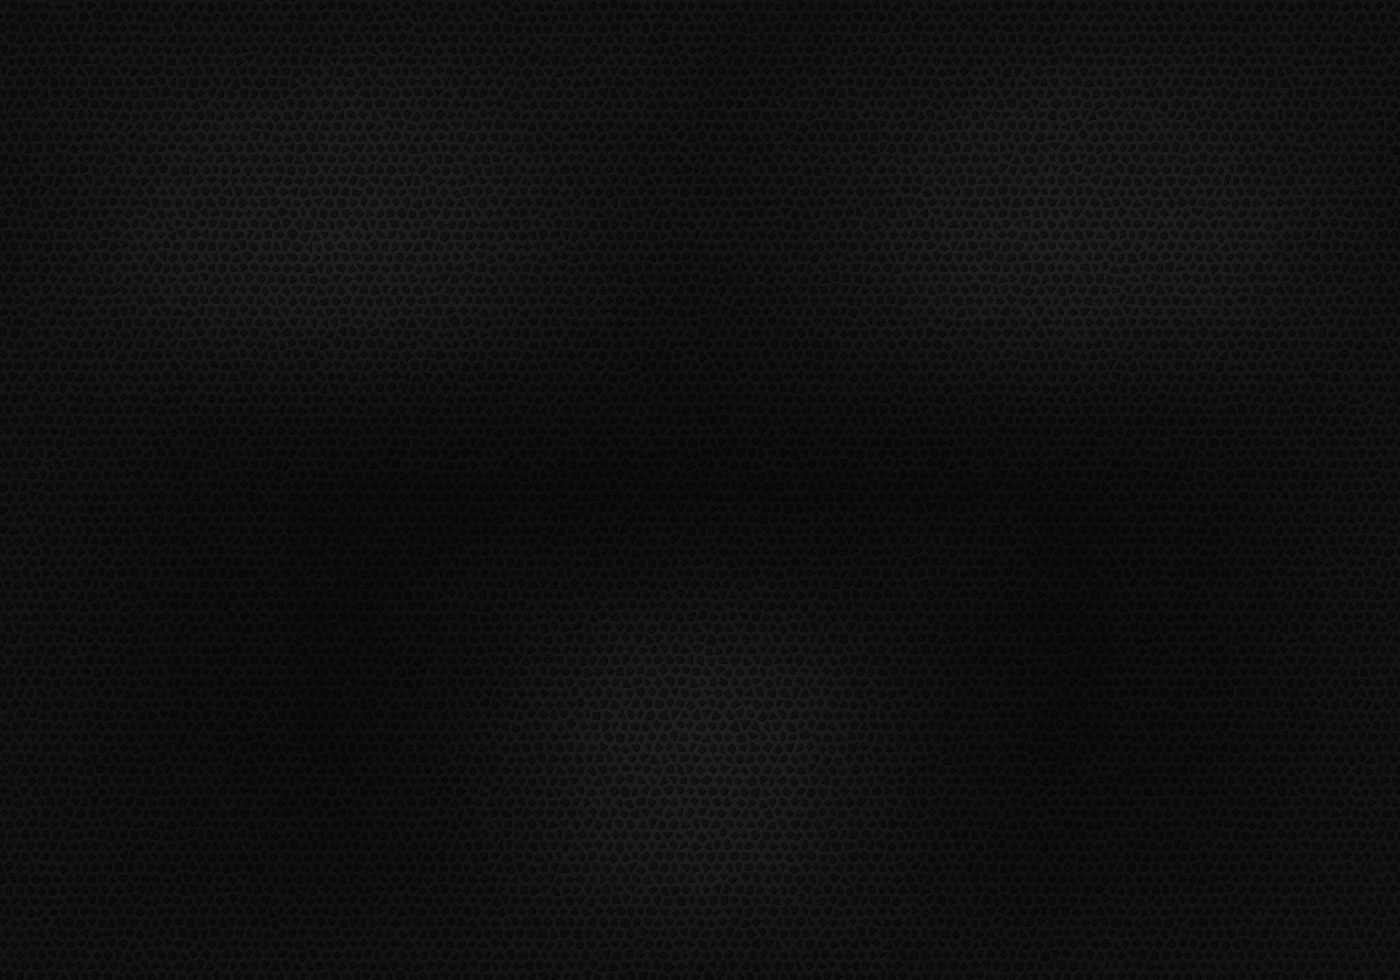 free-black-leather-vector